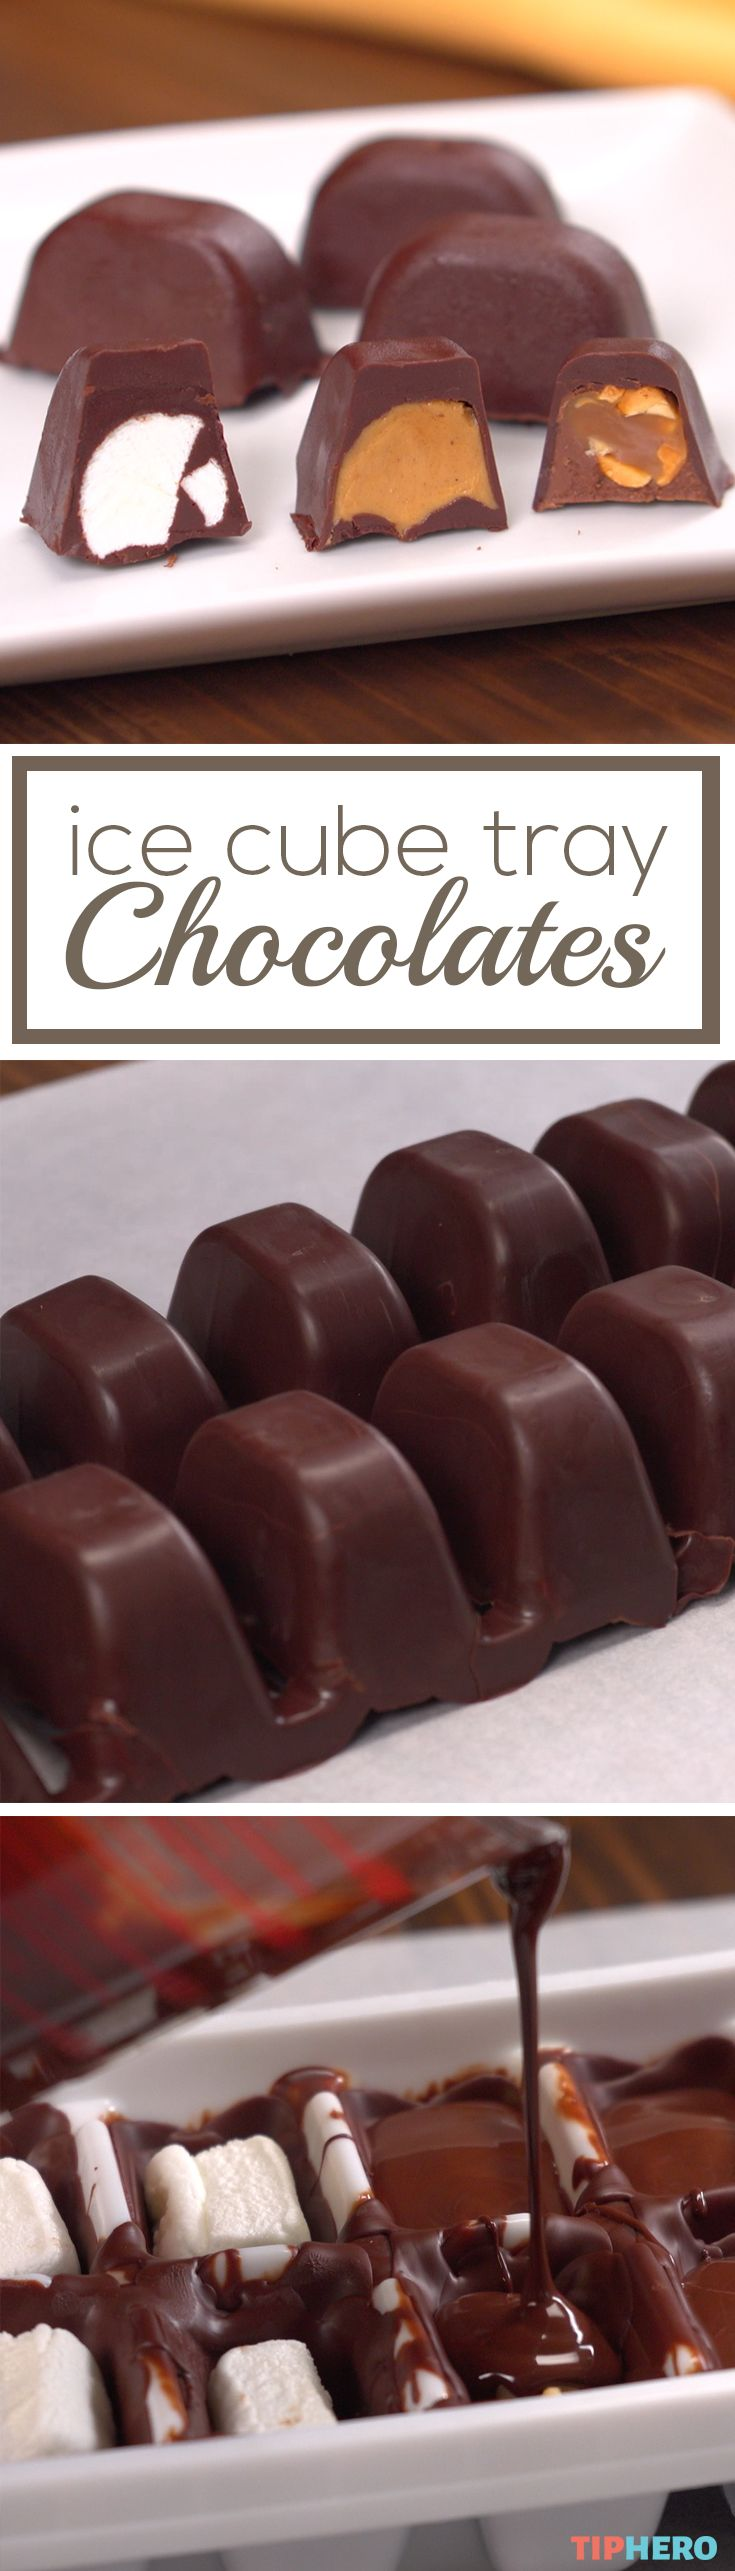 Make delicious, filled chocolates at home with this simple recipe. With a few si...